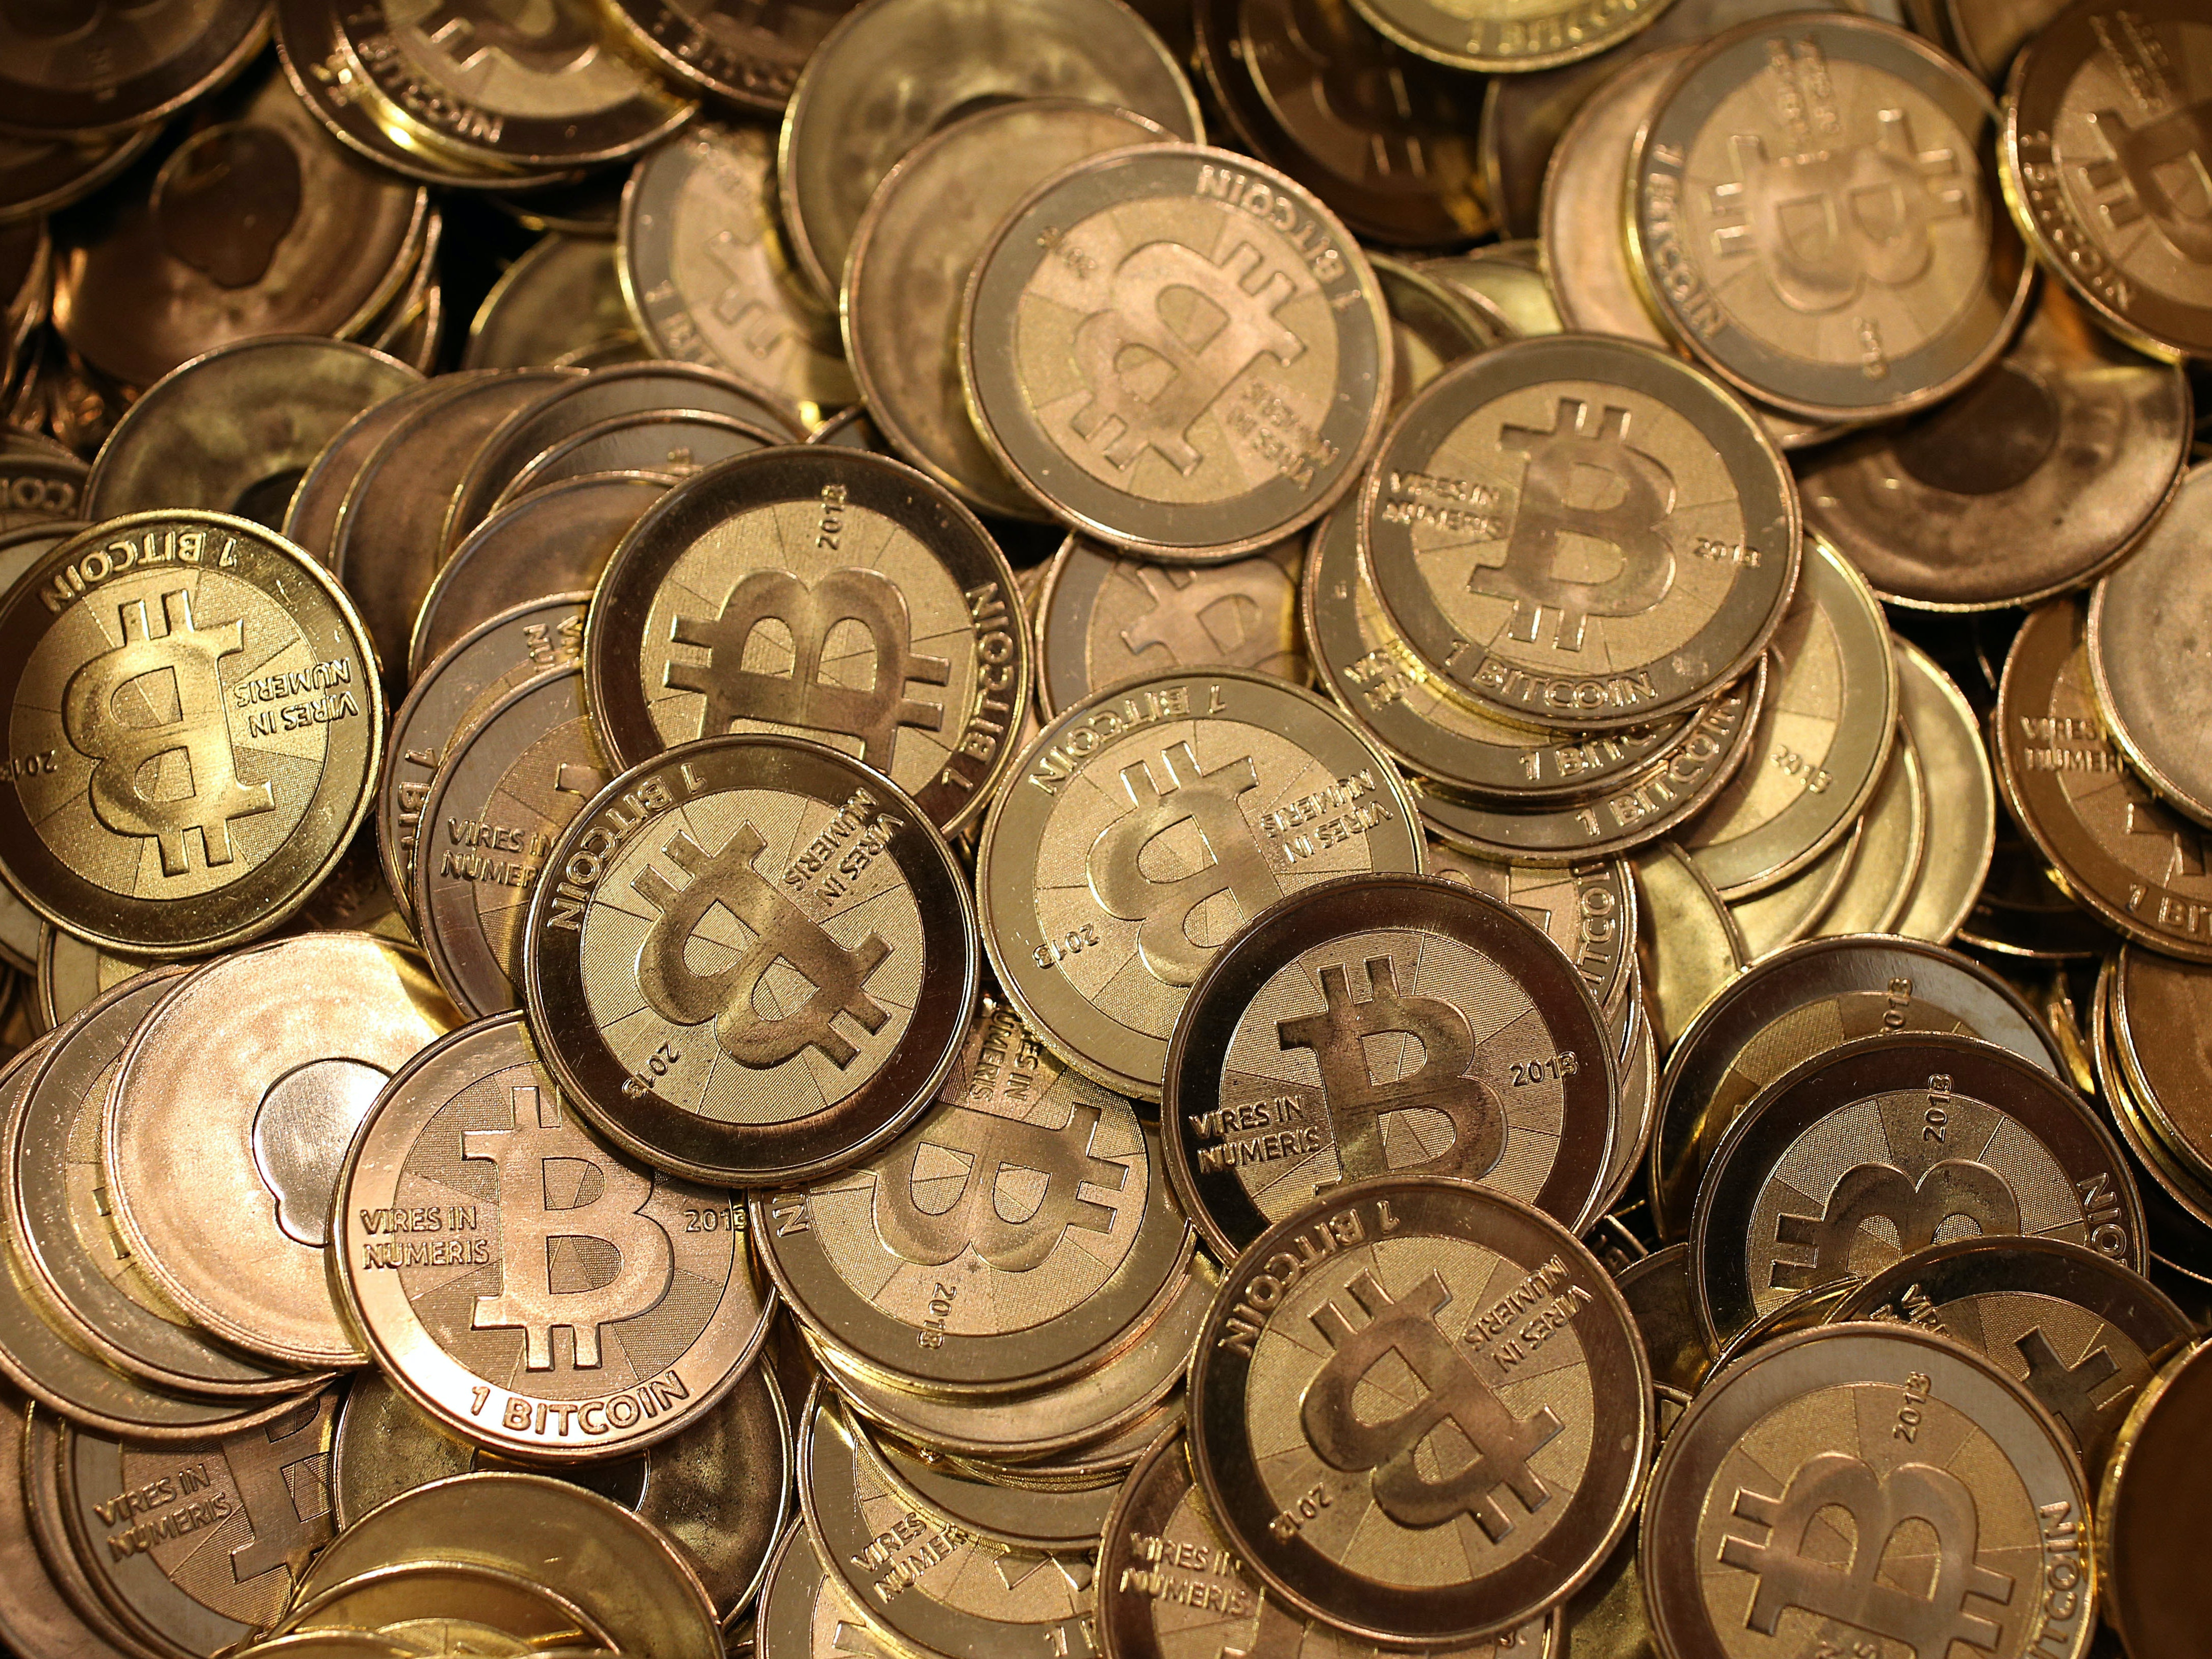 SALT LAKE CITY, UT - APRIL 26: A pile of Bitcoin slugs sit in a box ready to be minted by Software engineer Mike Caldwell in his shop on April 26, 2013 in Sandy, Utah. Bitcoin is an experimental digital currency used over the Internet that is gaining in popularity worldwide. (Photo by George Frey/Getty Images)